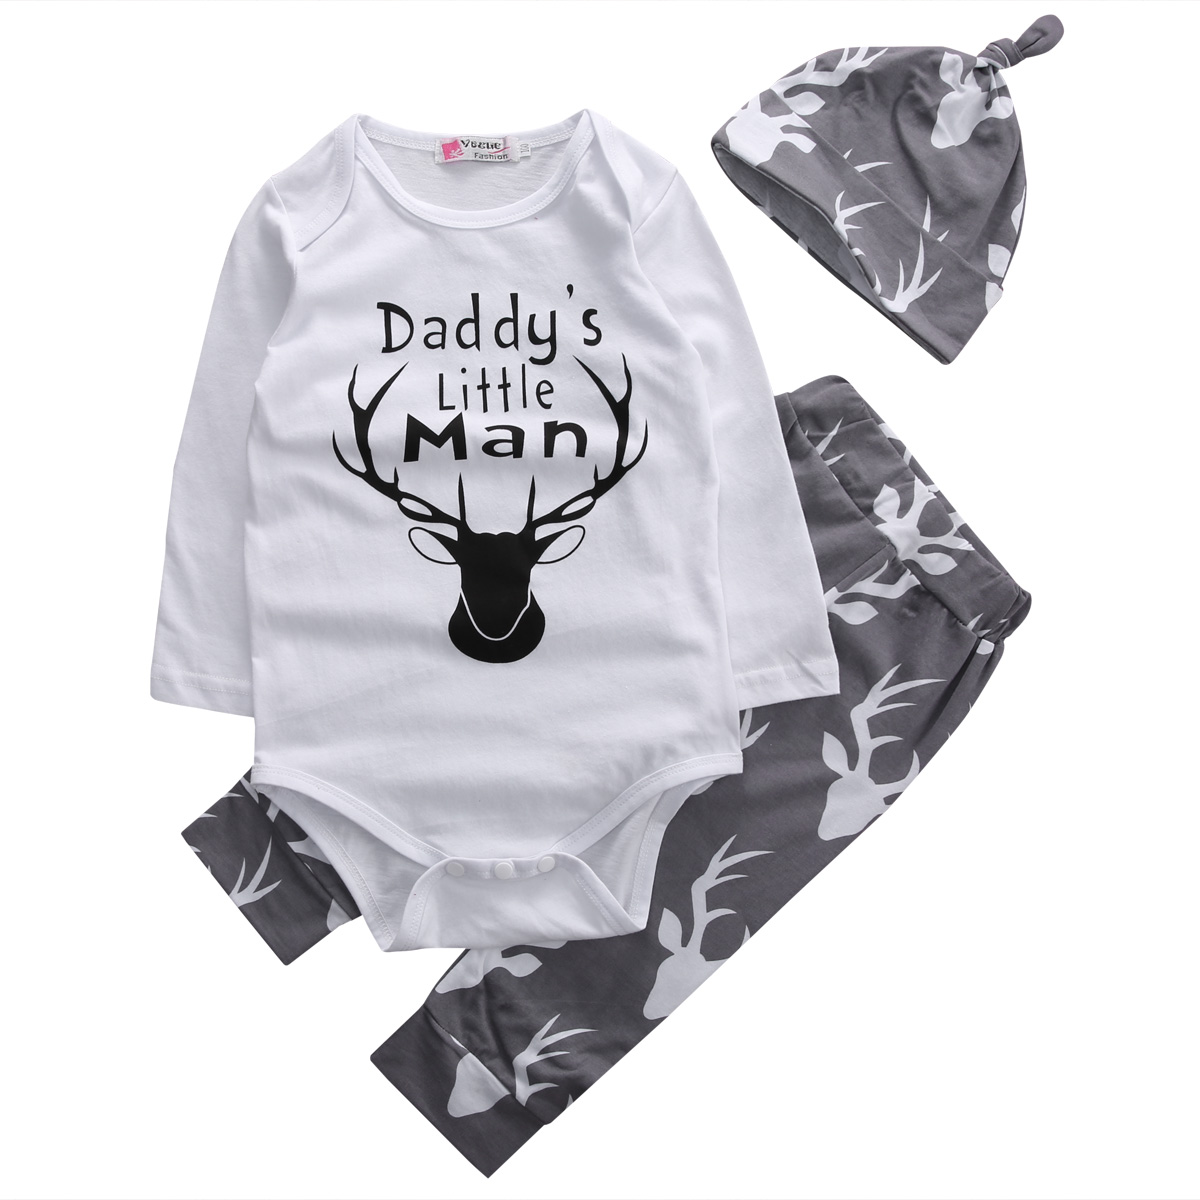 2017 Hot 3PCS Newborn Kids Baby Boys Clothes Daddy's Little Man Deer Romper Pants Legging Hat Outfit Toddler Infant Clothing Set absorba baby boys newborn g velour tutu legging set